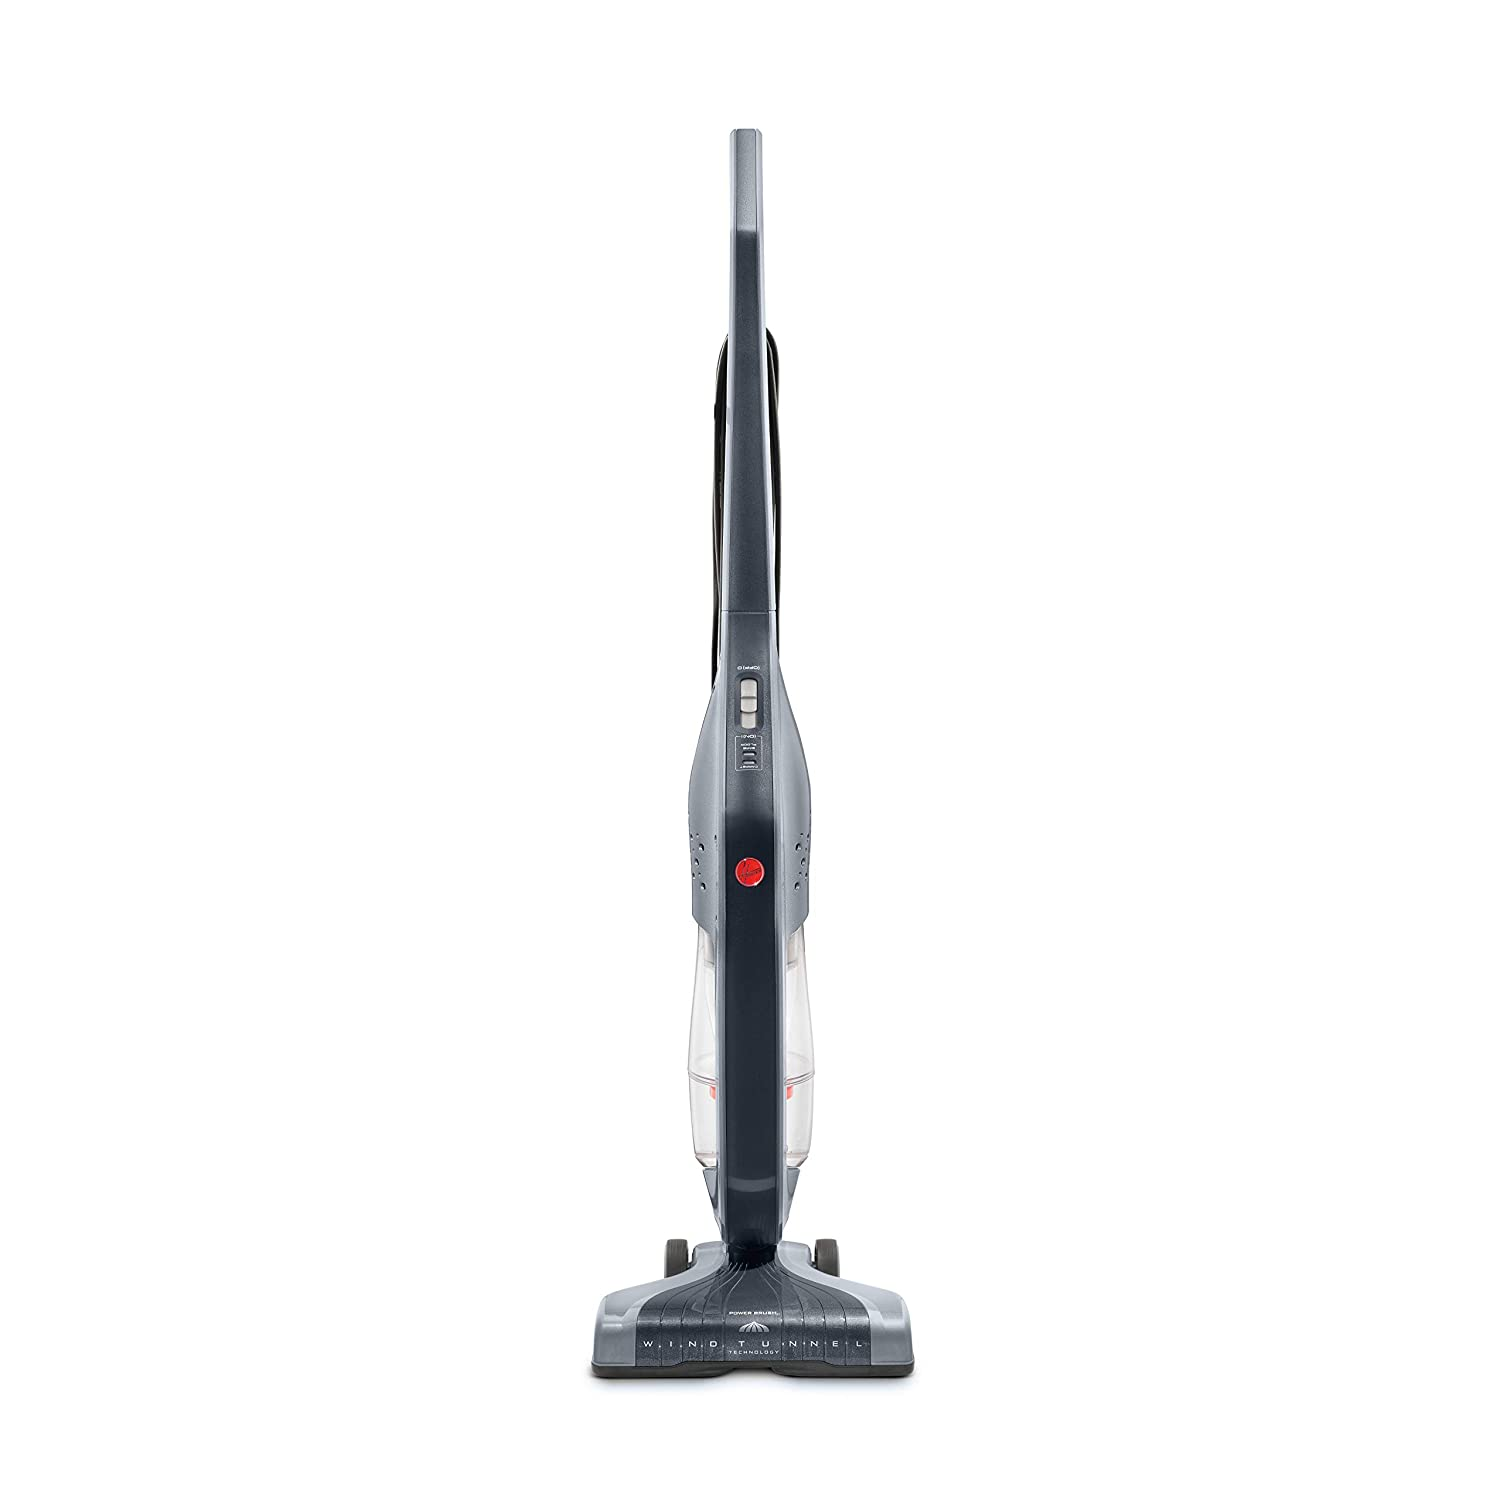 Hoover Linx Bagless Corded Cyclonic Lightweight Stick Vacuum